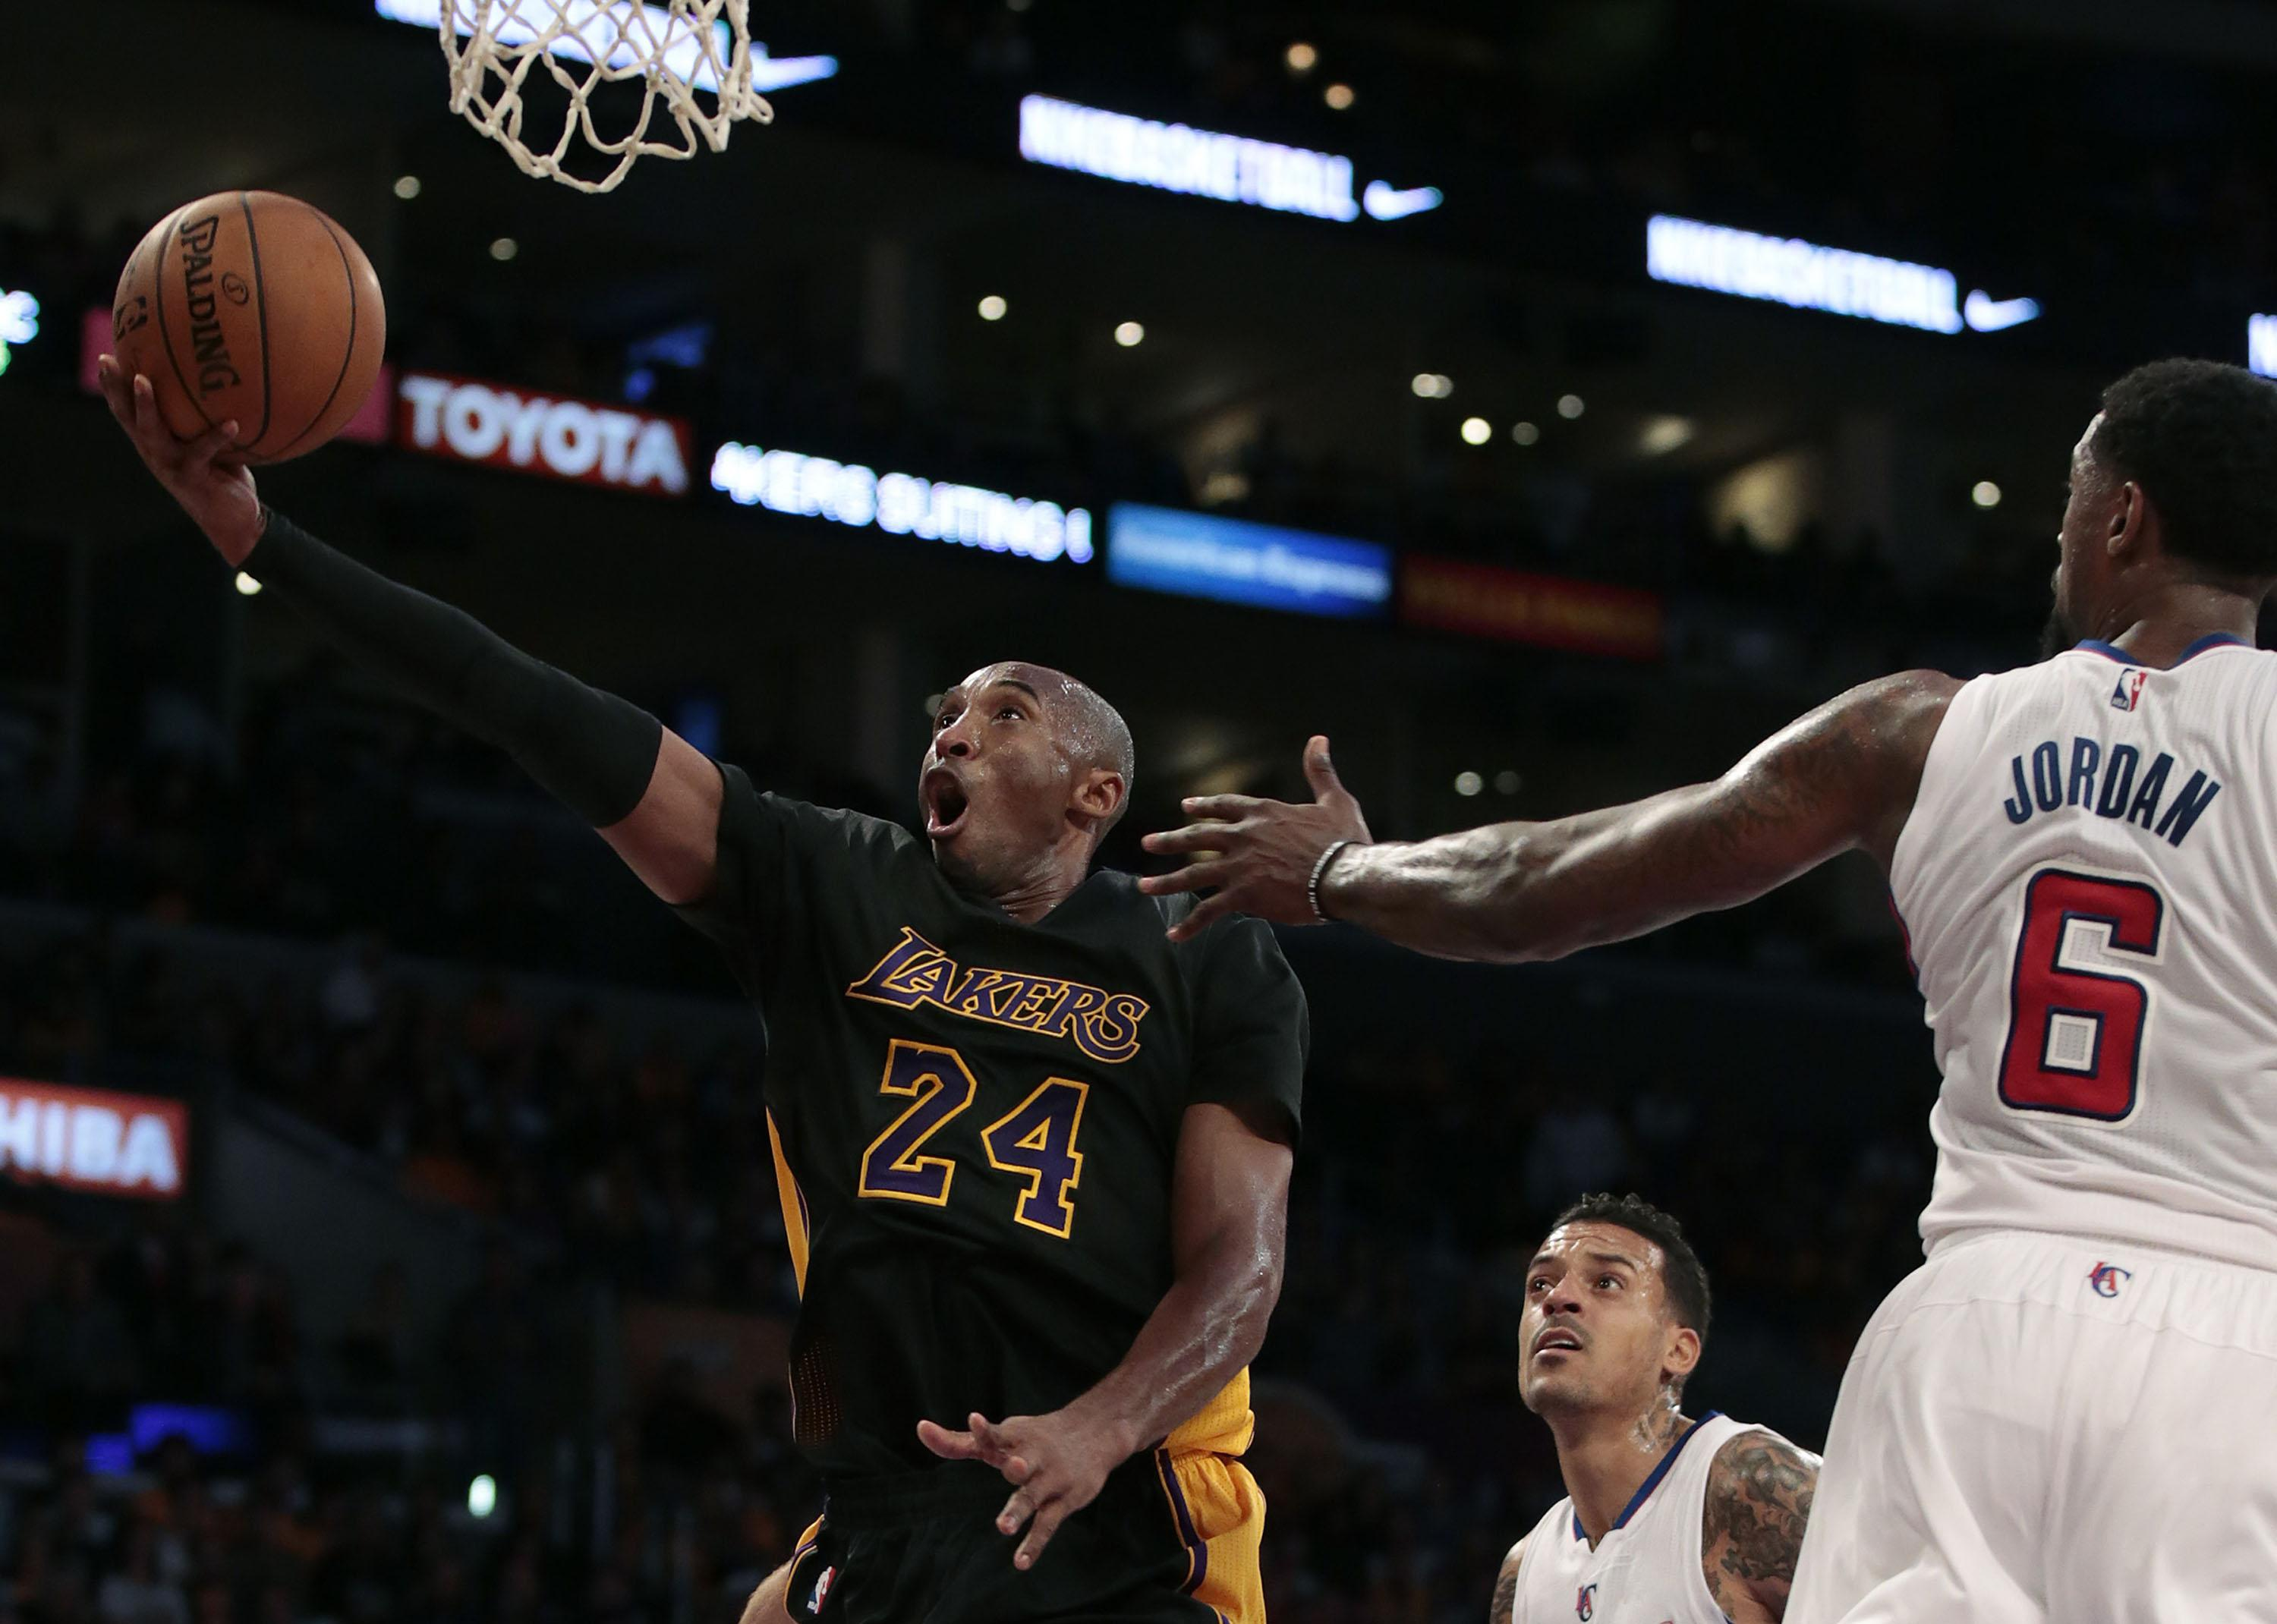 The Los Angeles Lakers and their fans shouldn't rush success. Time will help rebuild the team. Photo courtesy of Tribune News Services.